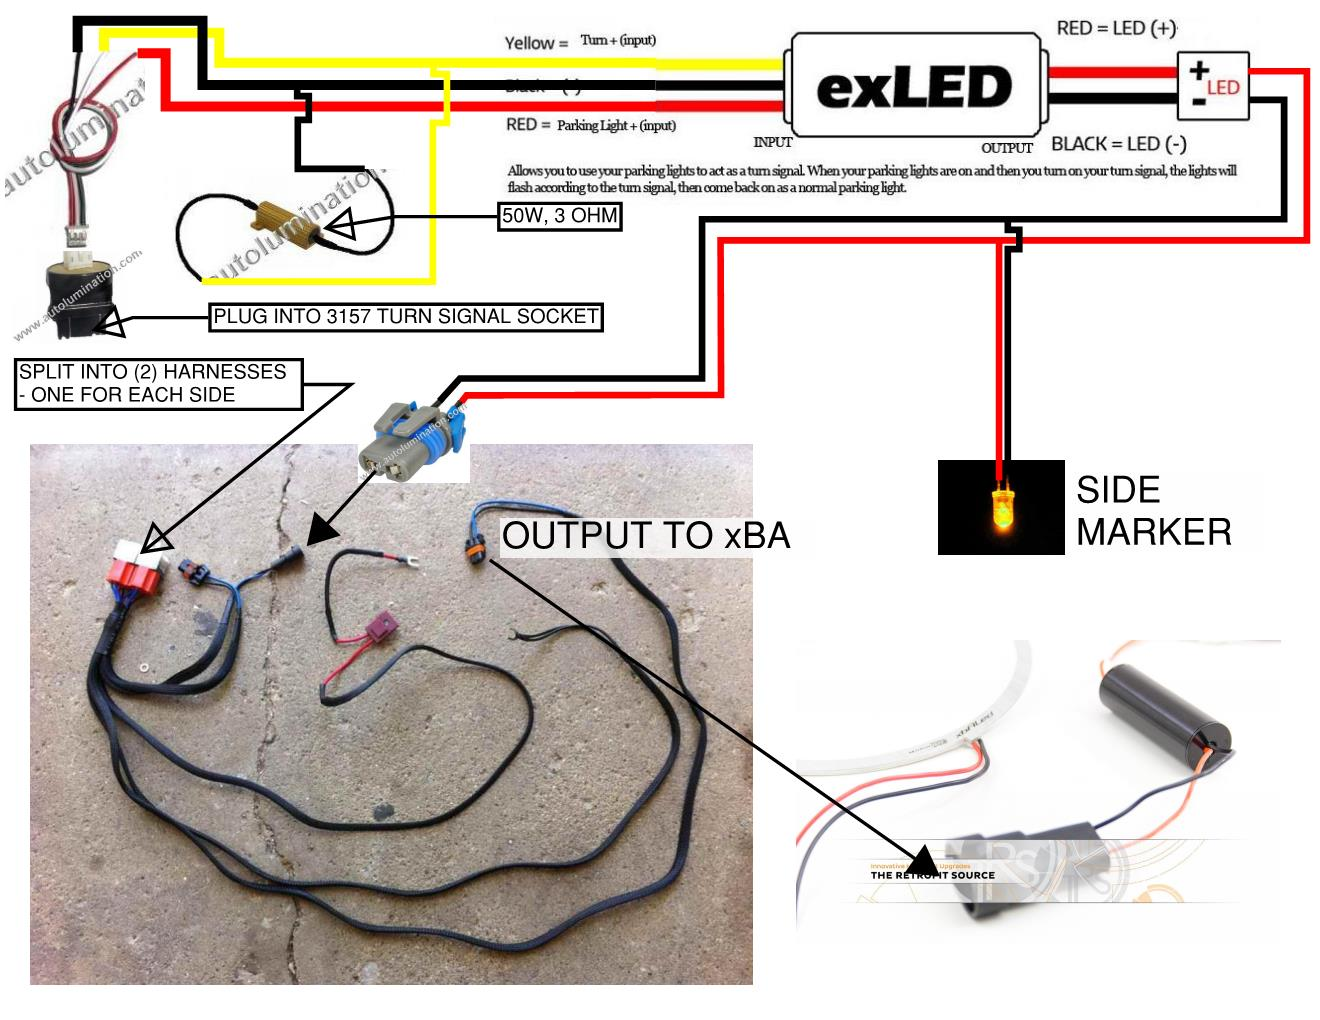 Dodge LED Turn Signal Wire Diagram ver 3 led turn signal wiring diagram 3 wire turn signal diagram \u2022 free  at alyssarenee.co